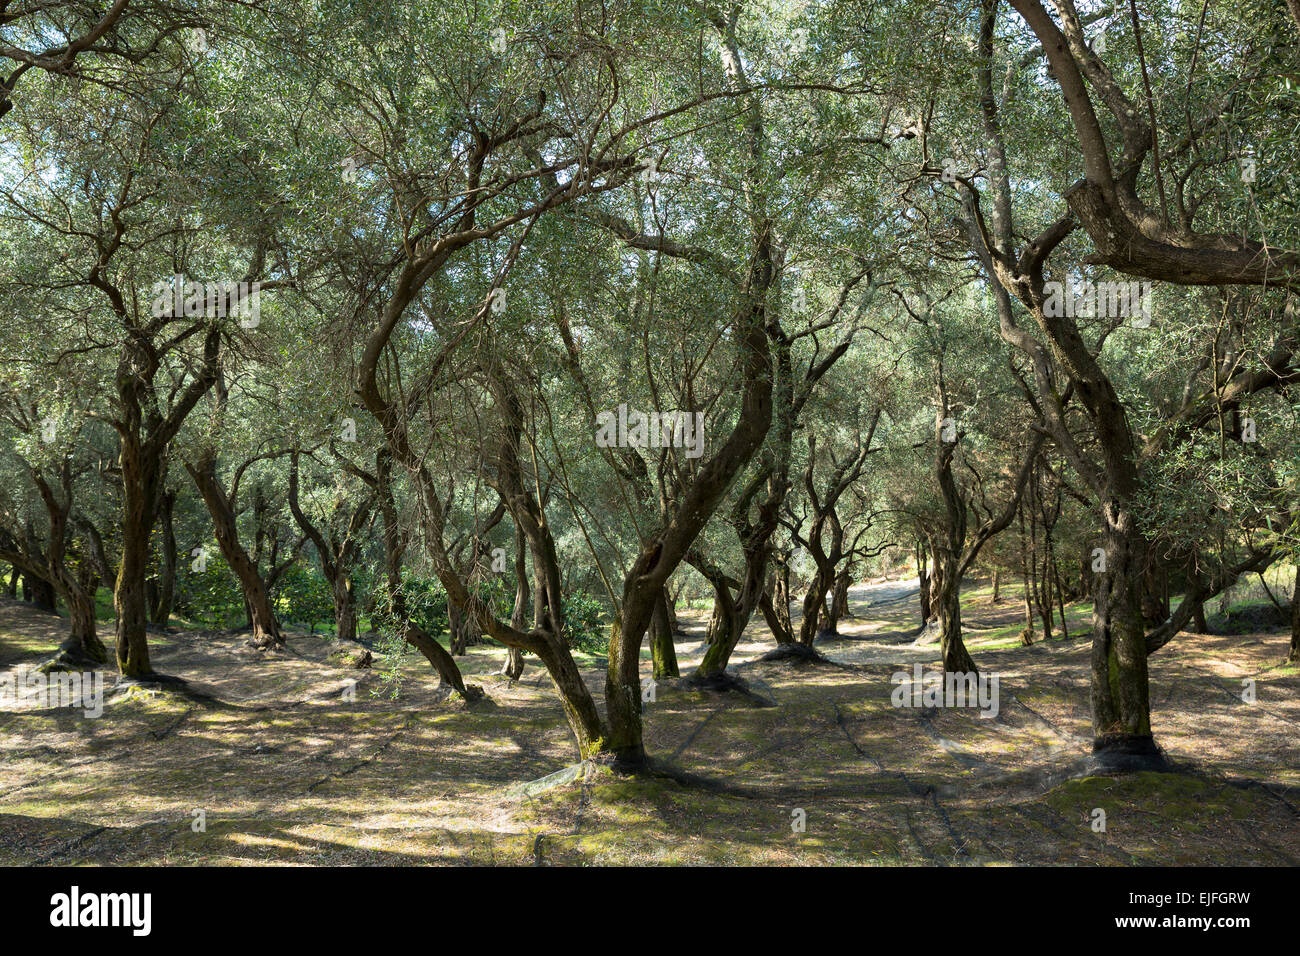 Plastic mesh meshing laid out for harvest of olives trees, Olea europaea in olive grove for olive oil production, Stock Photo